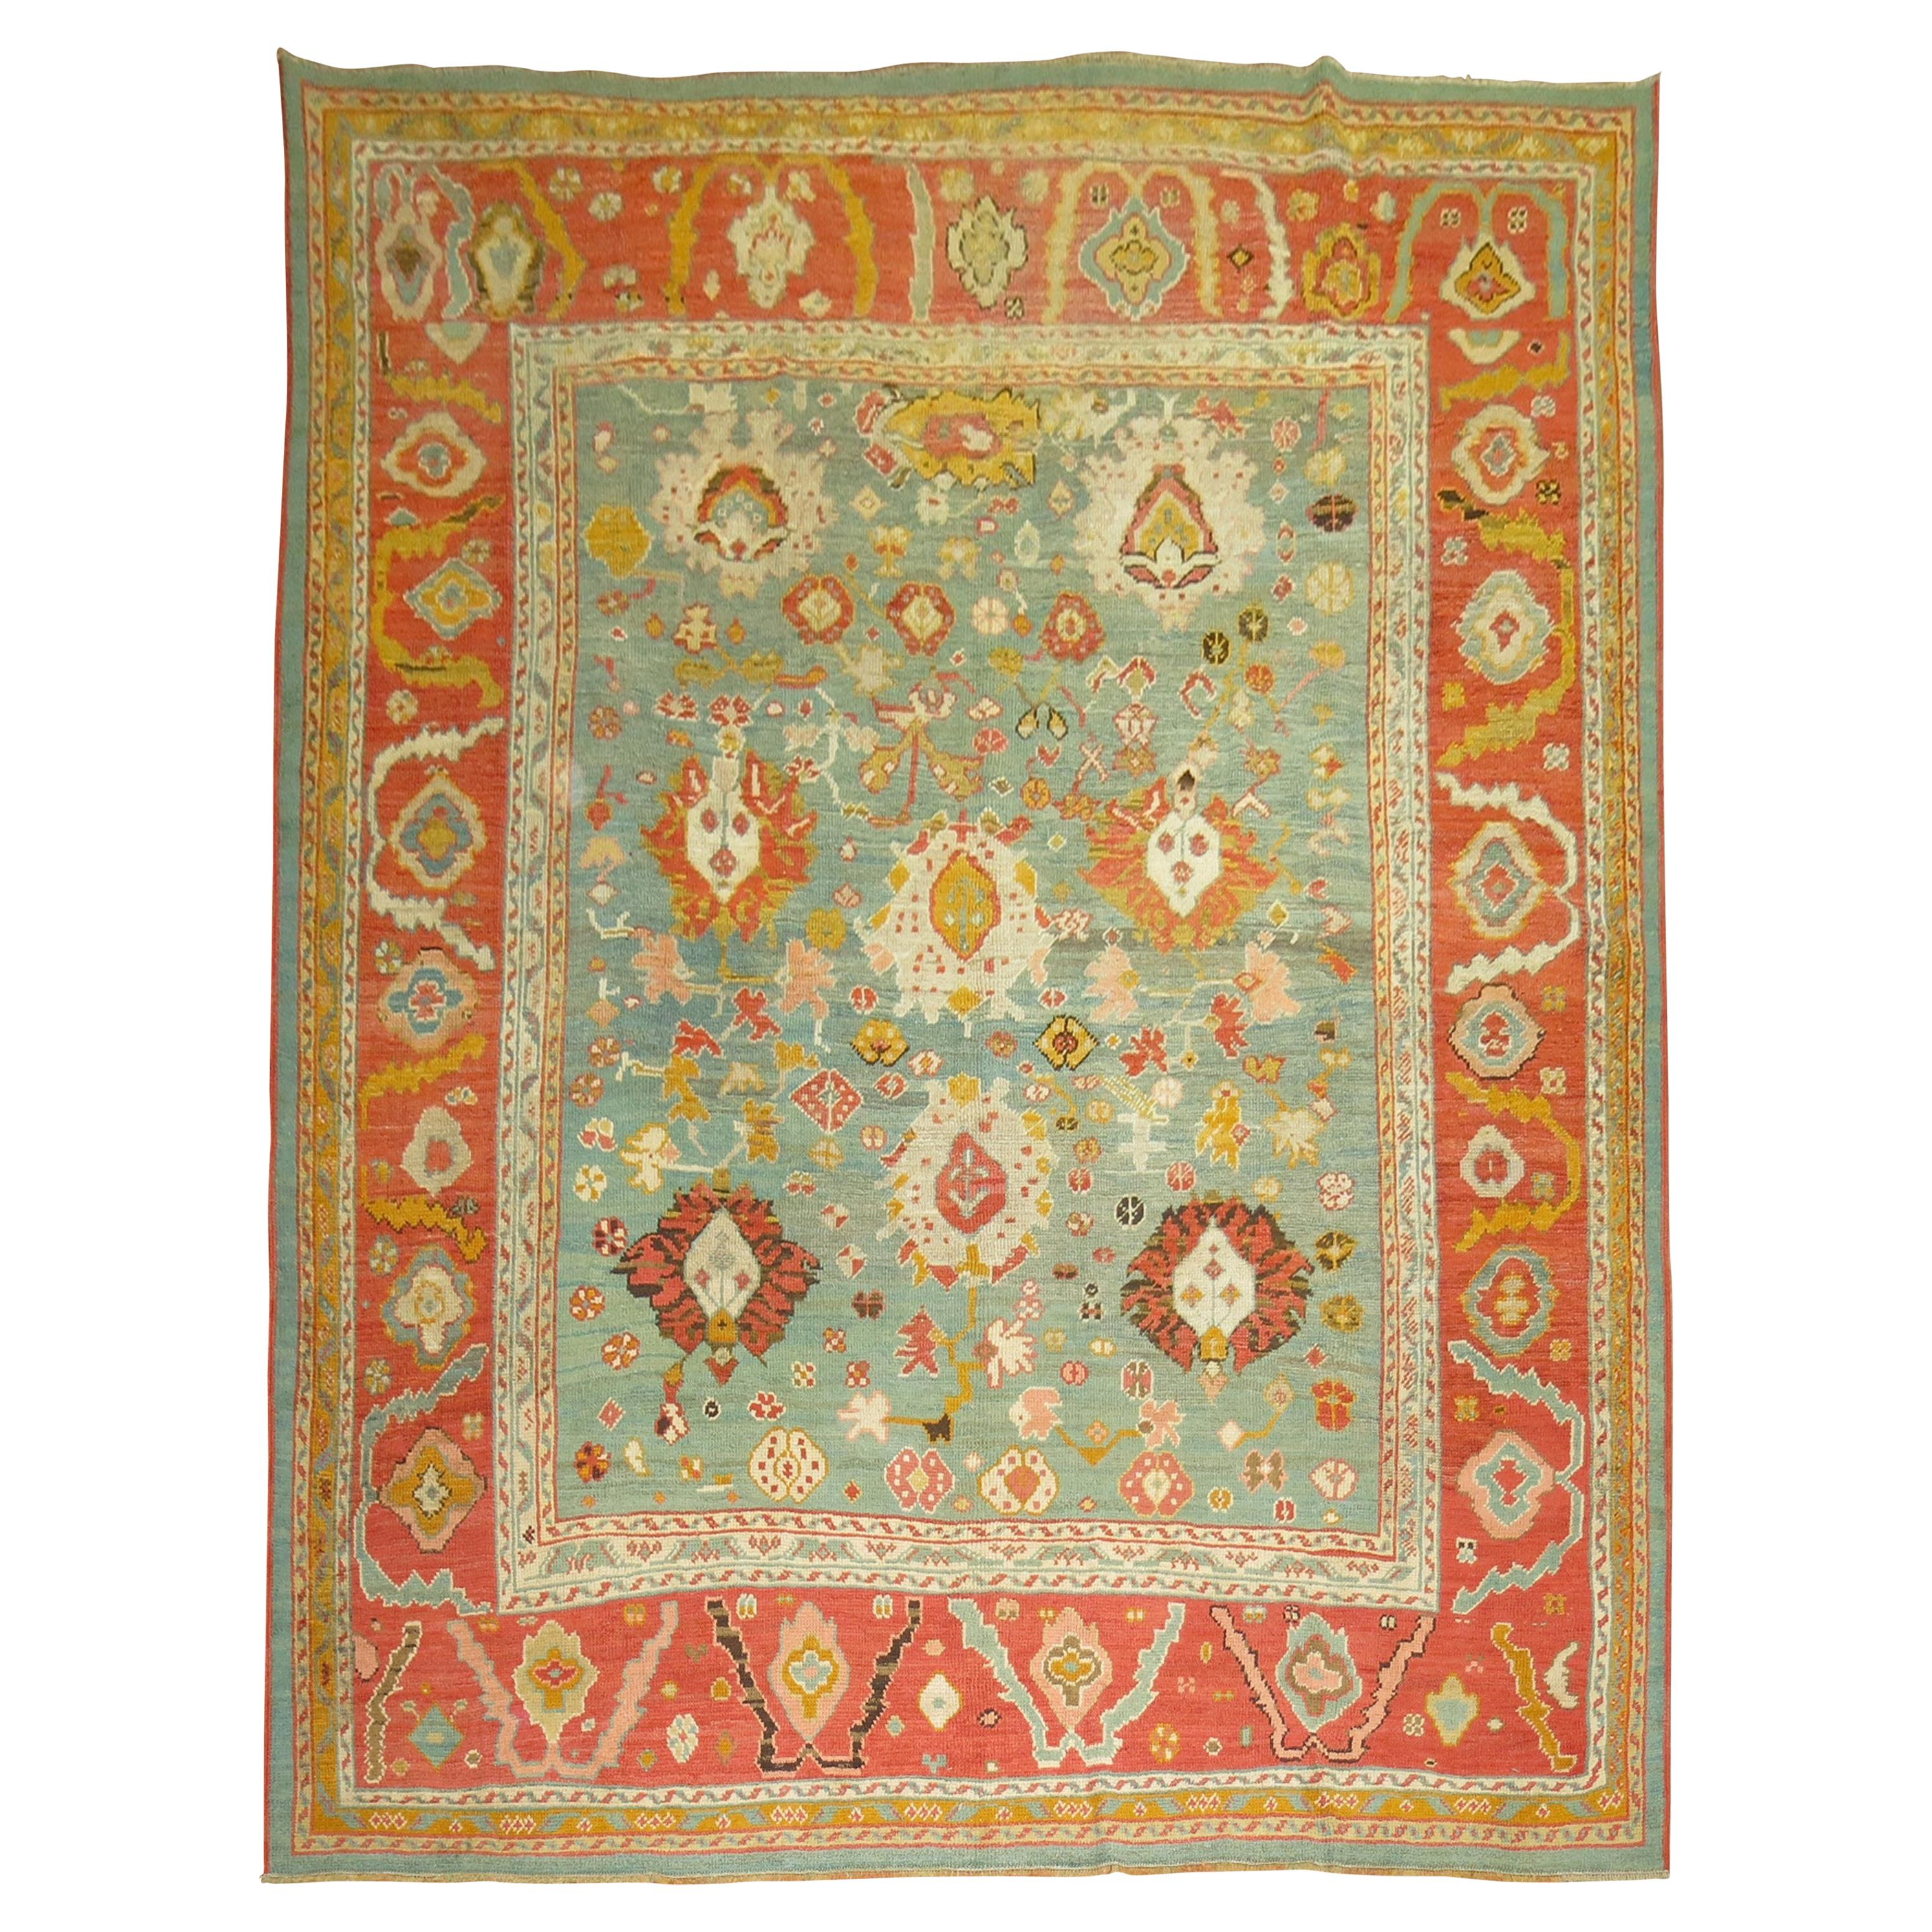 Green Orange Antique Oushak Rug